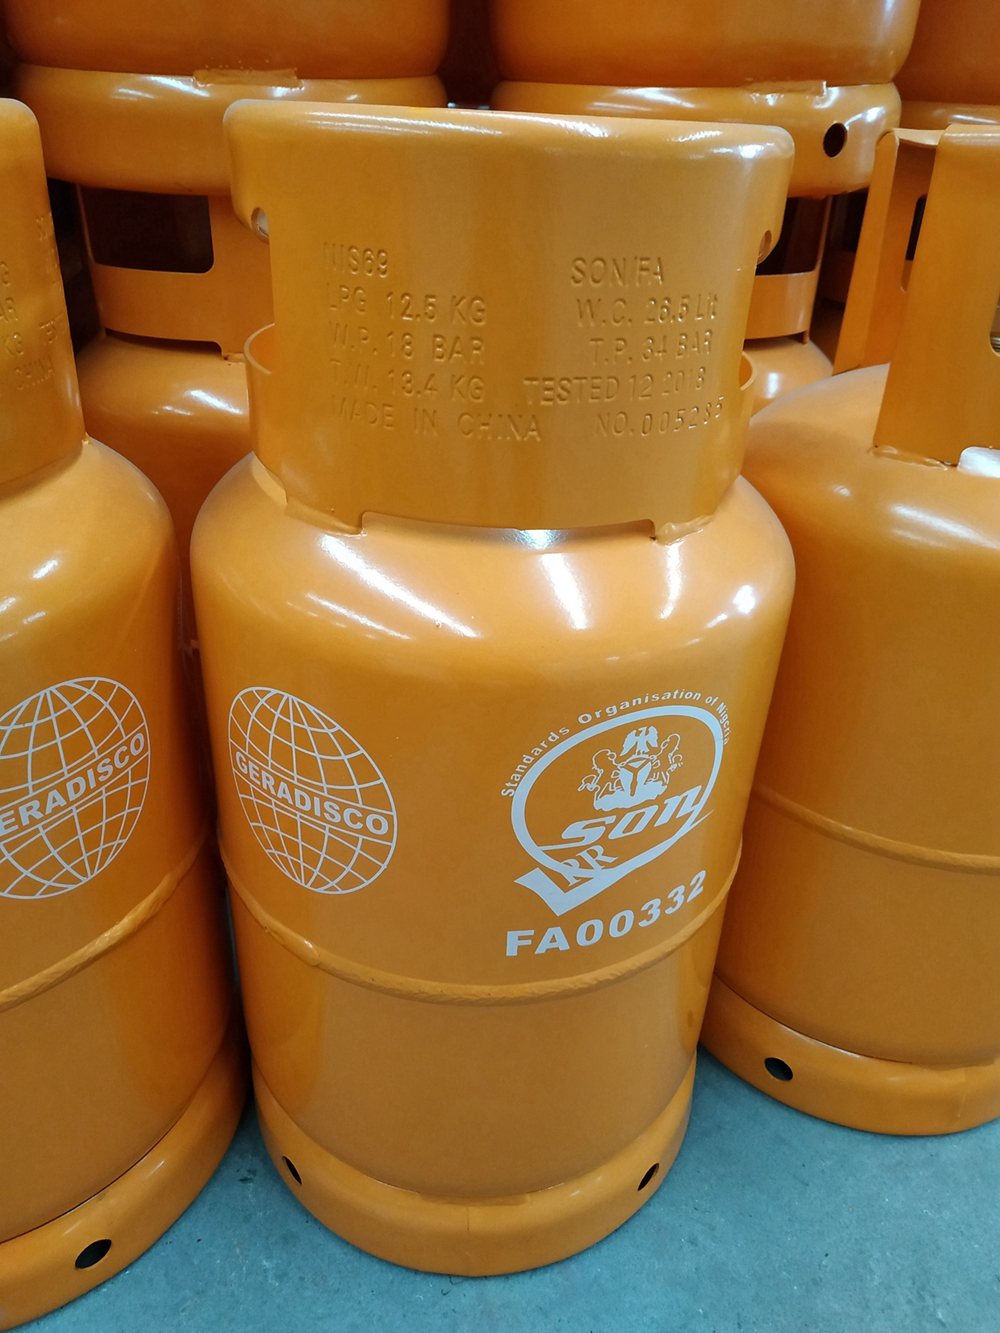 Importation of LPG cylinders into Nigeria SONCAP Certification needed